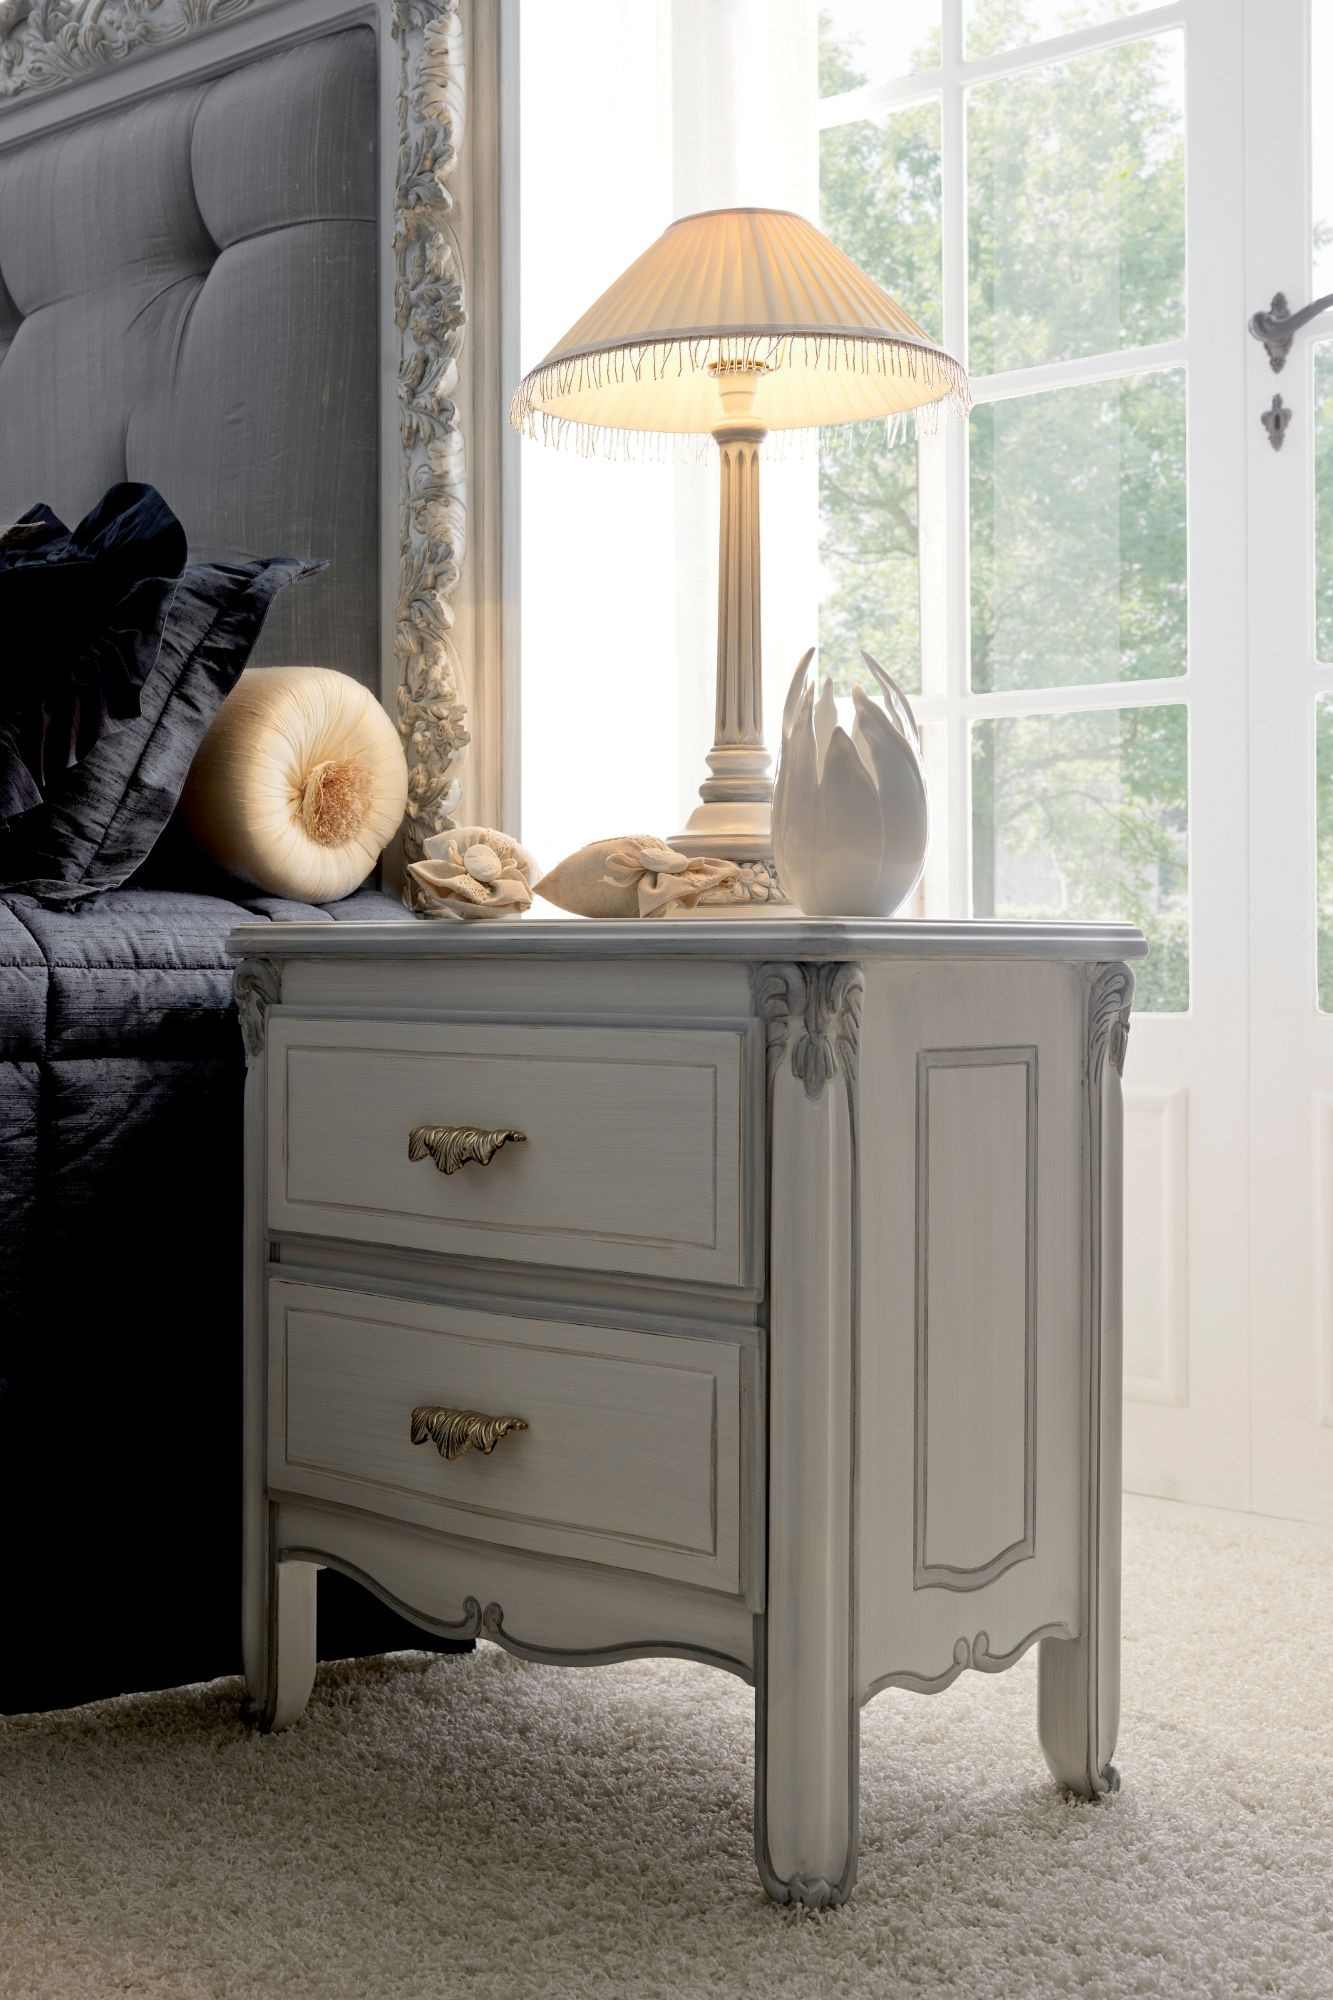 Light Grey Bedside Table: Classic Italian Bedside Table With Drawers And Beautiful